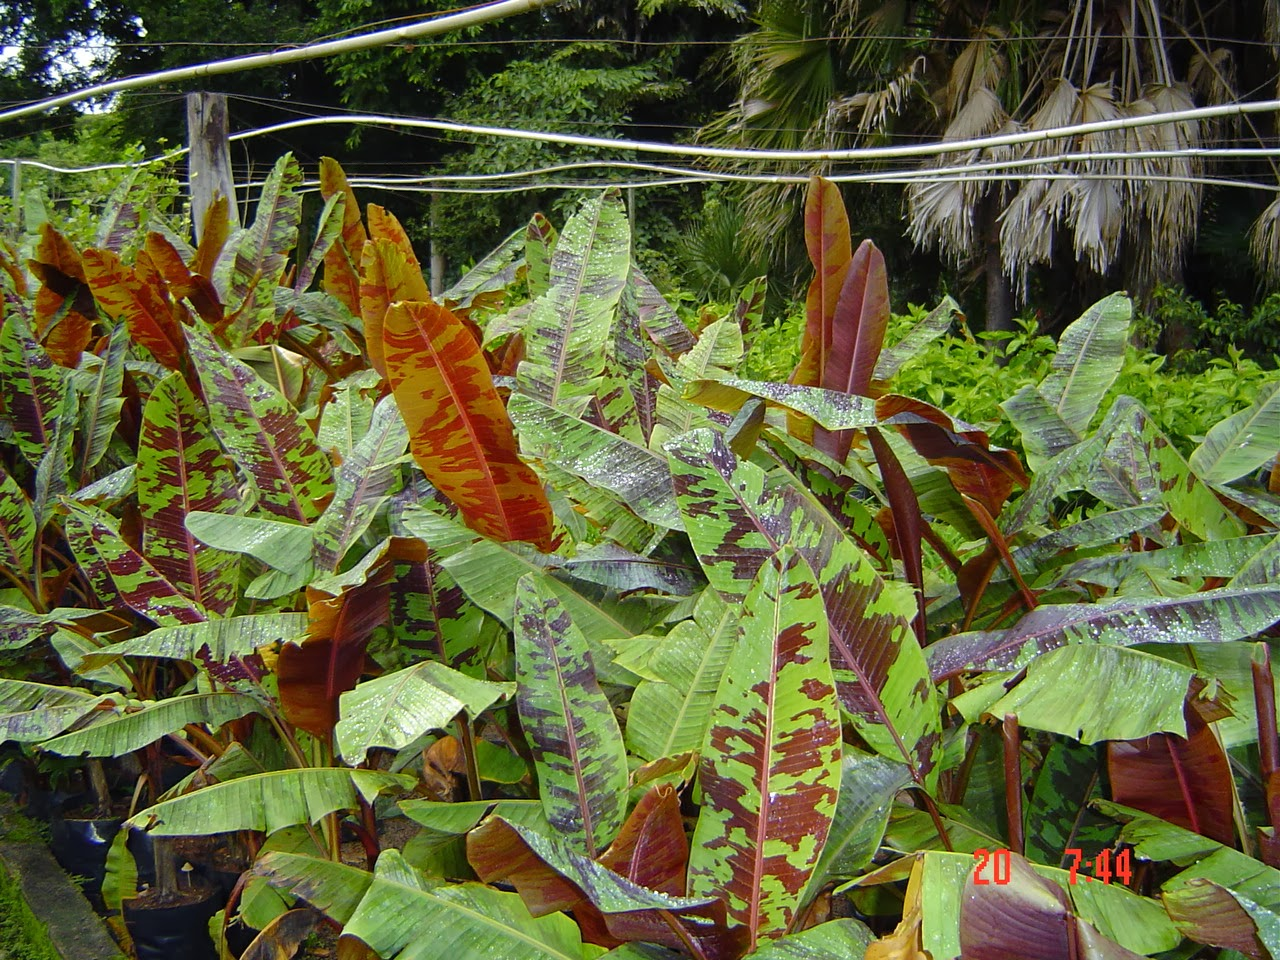 Red Banana Tree, Variegated Blood Banana 'Rojo'